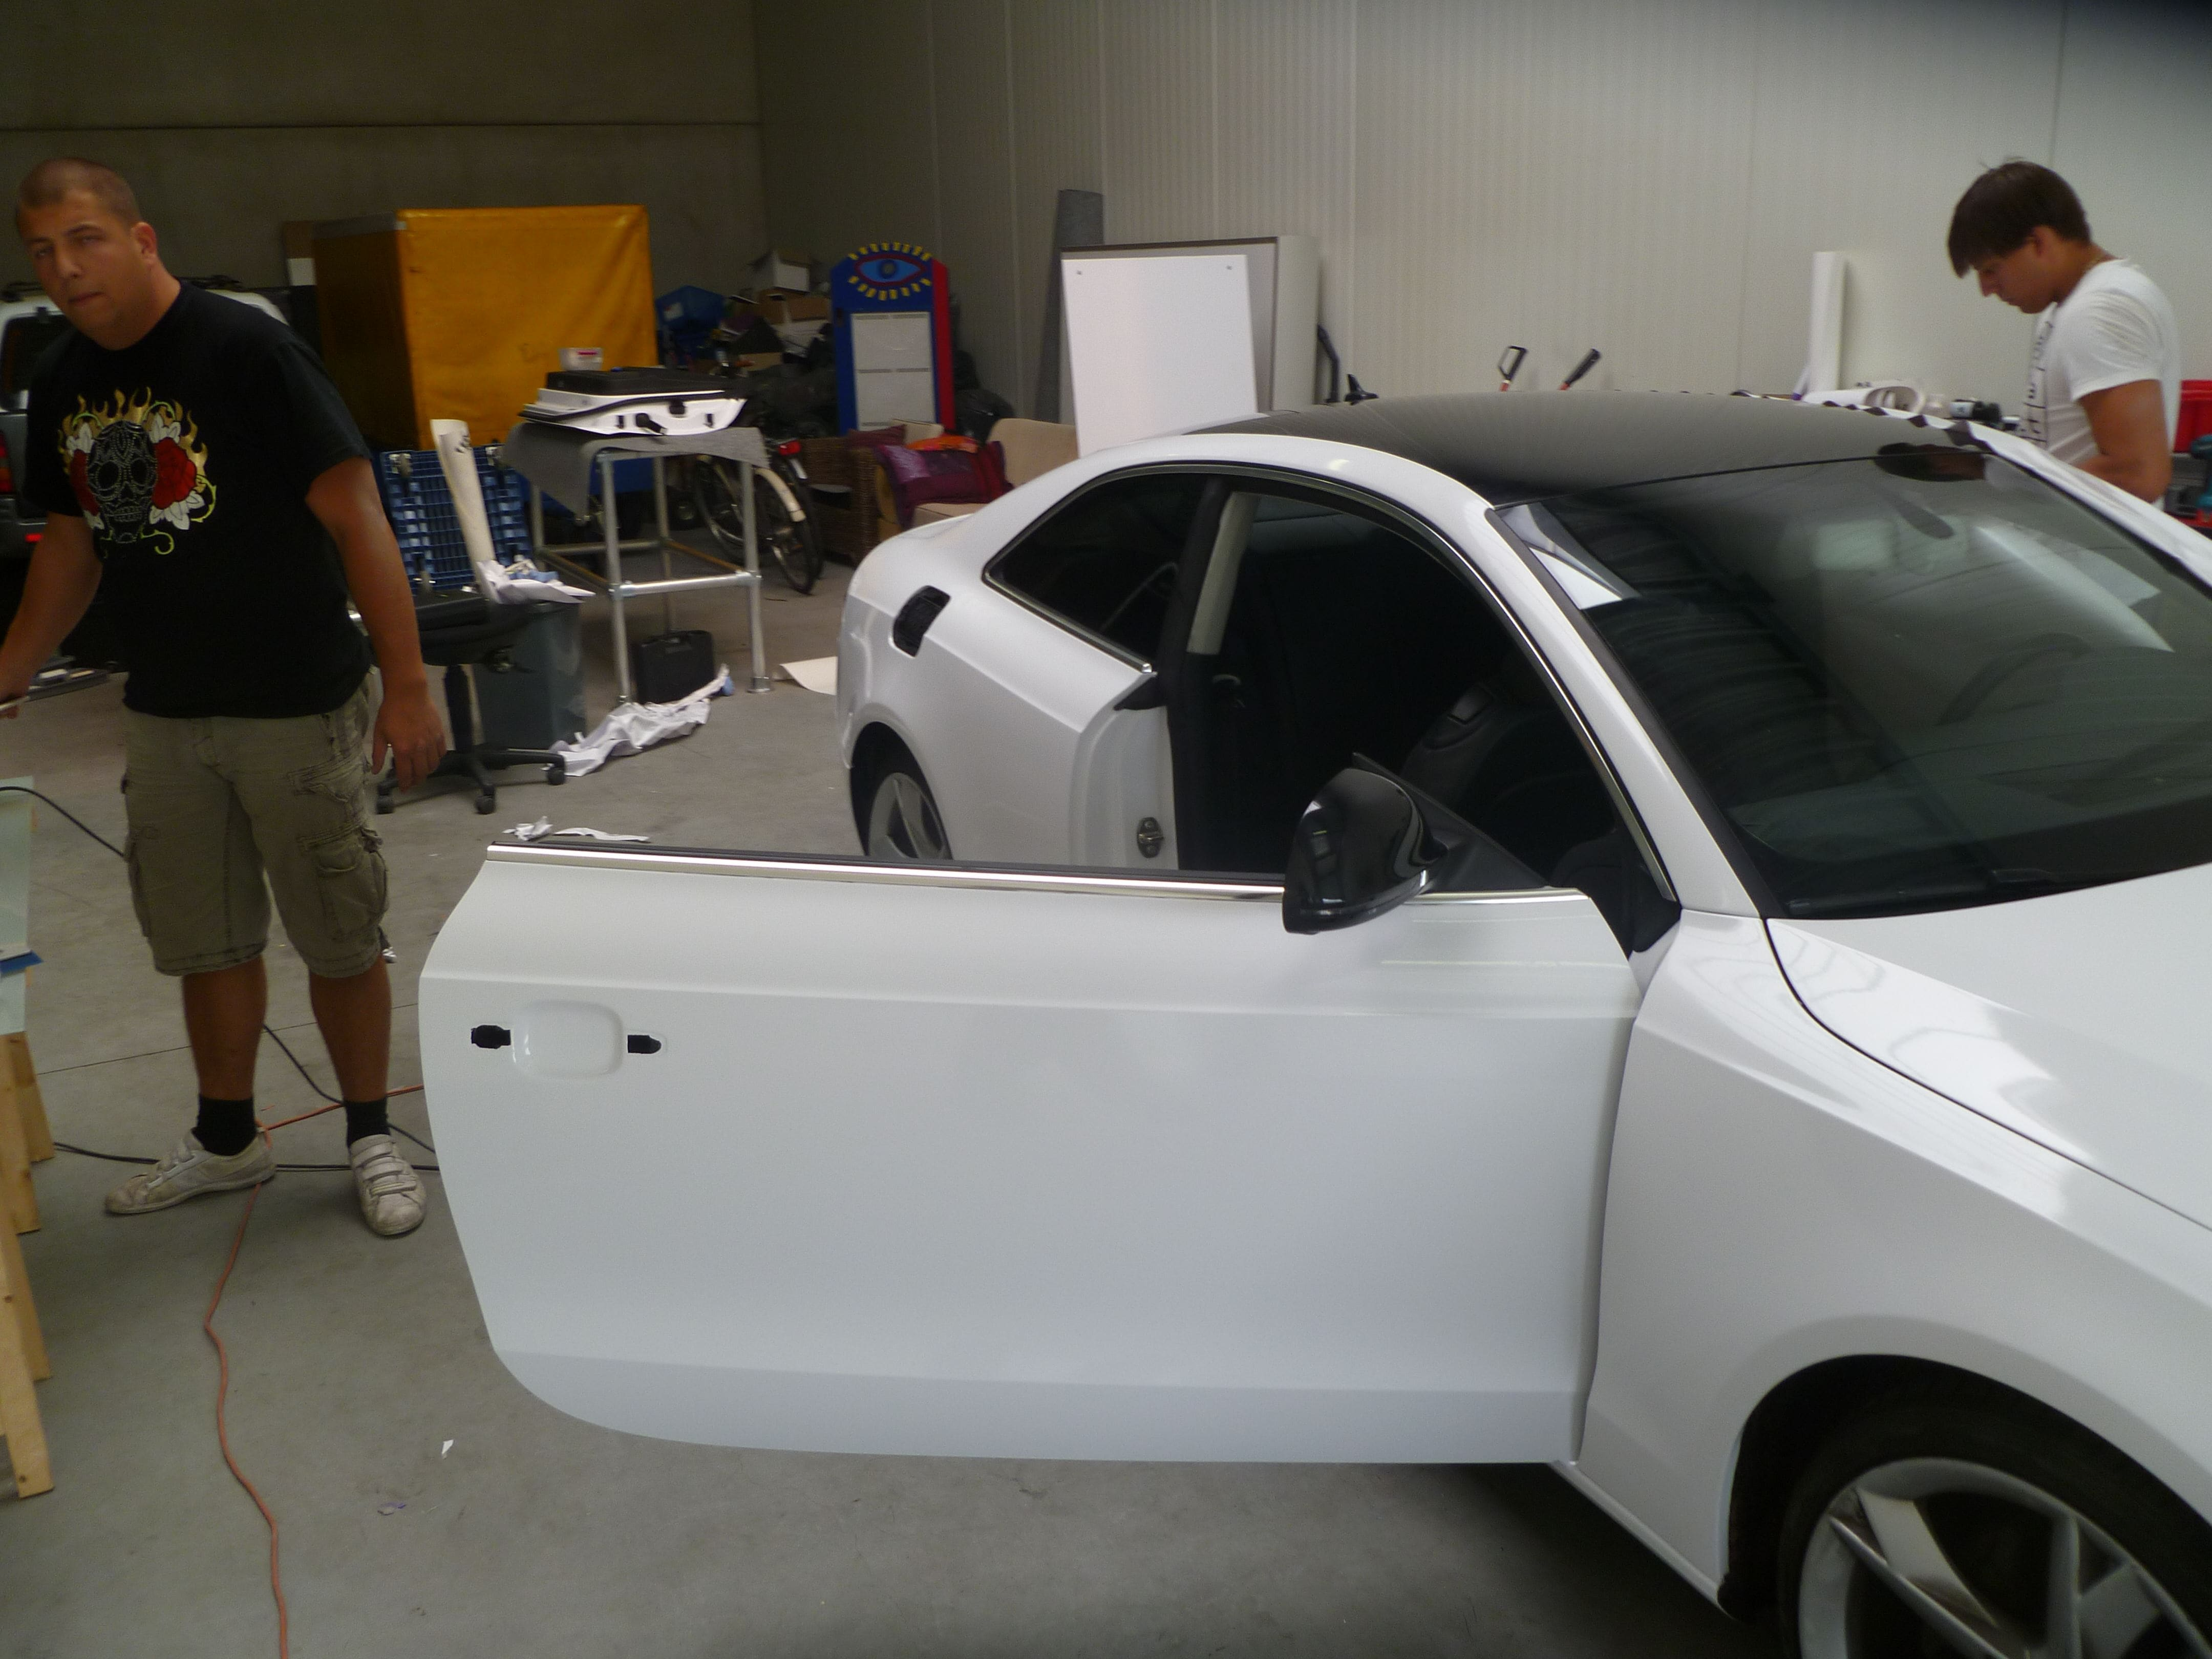 Audi A5 coupe met Metallic Witte Wrap, Carwrapping door Wrapmyride.nu Foto-nr:4730, ©2020